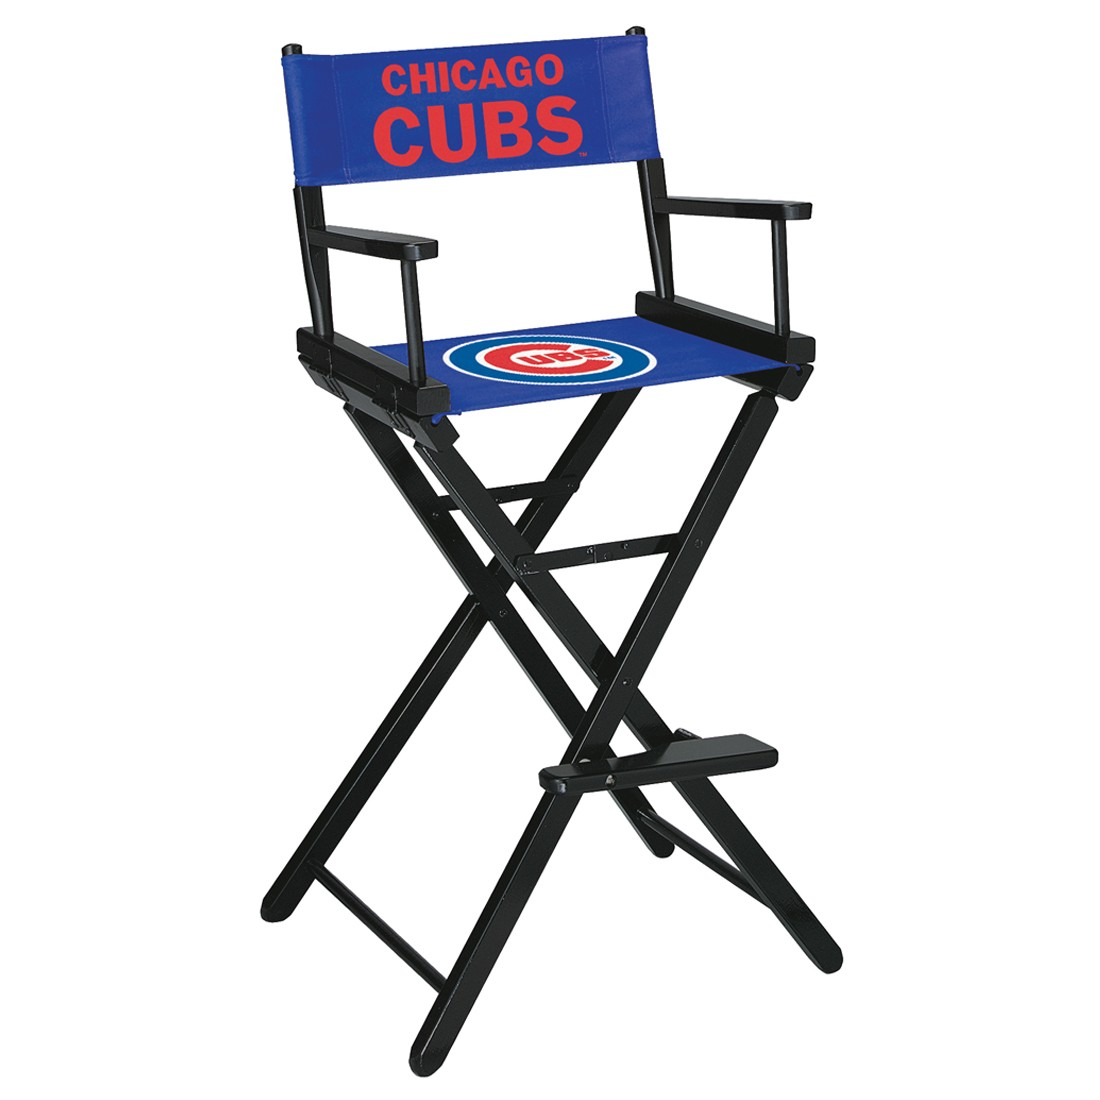 CHICAGO CUBS BAR HEIGHT DIRECTORS CHAIR